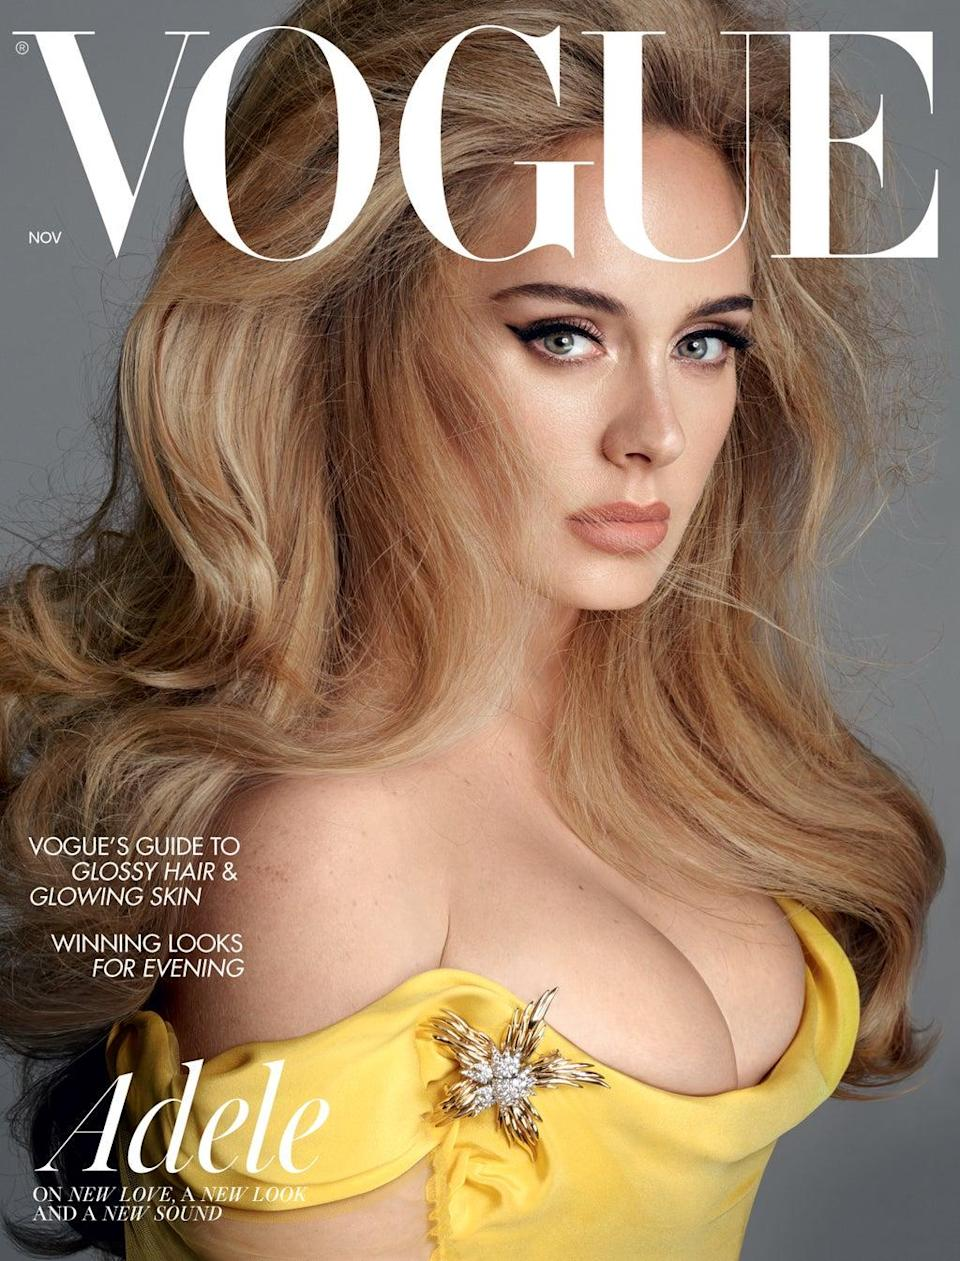 Adele says she got 'quite addicted' to working out. (British Vogue: Steven Meisel)